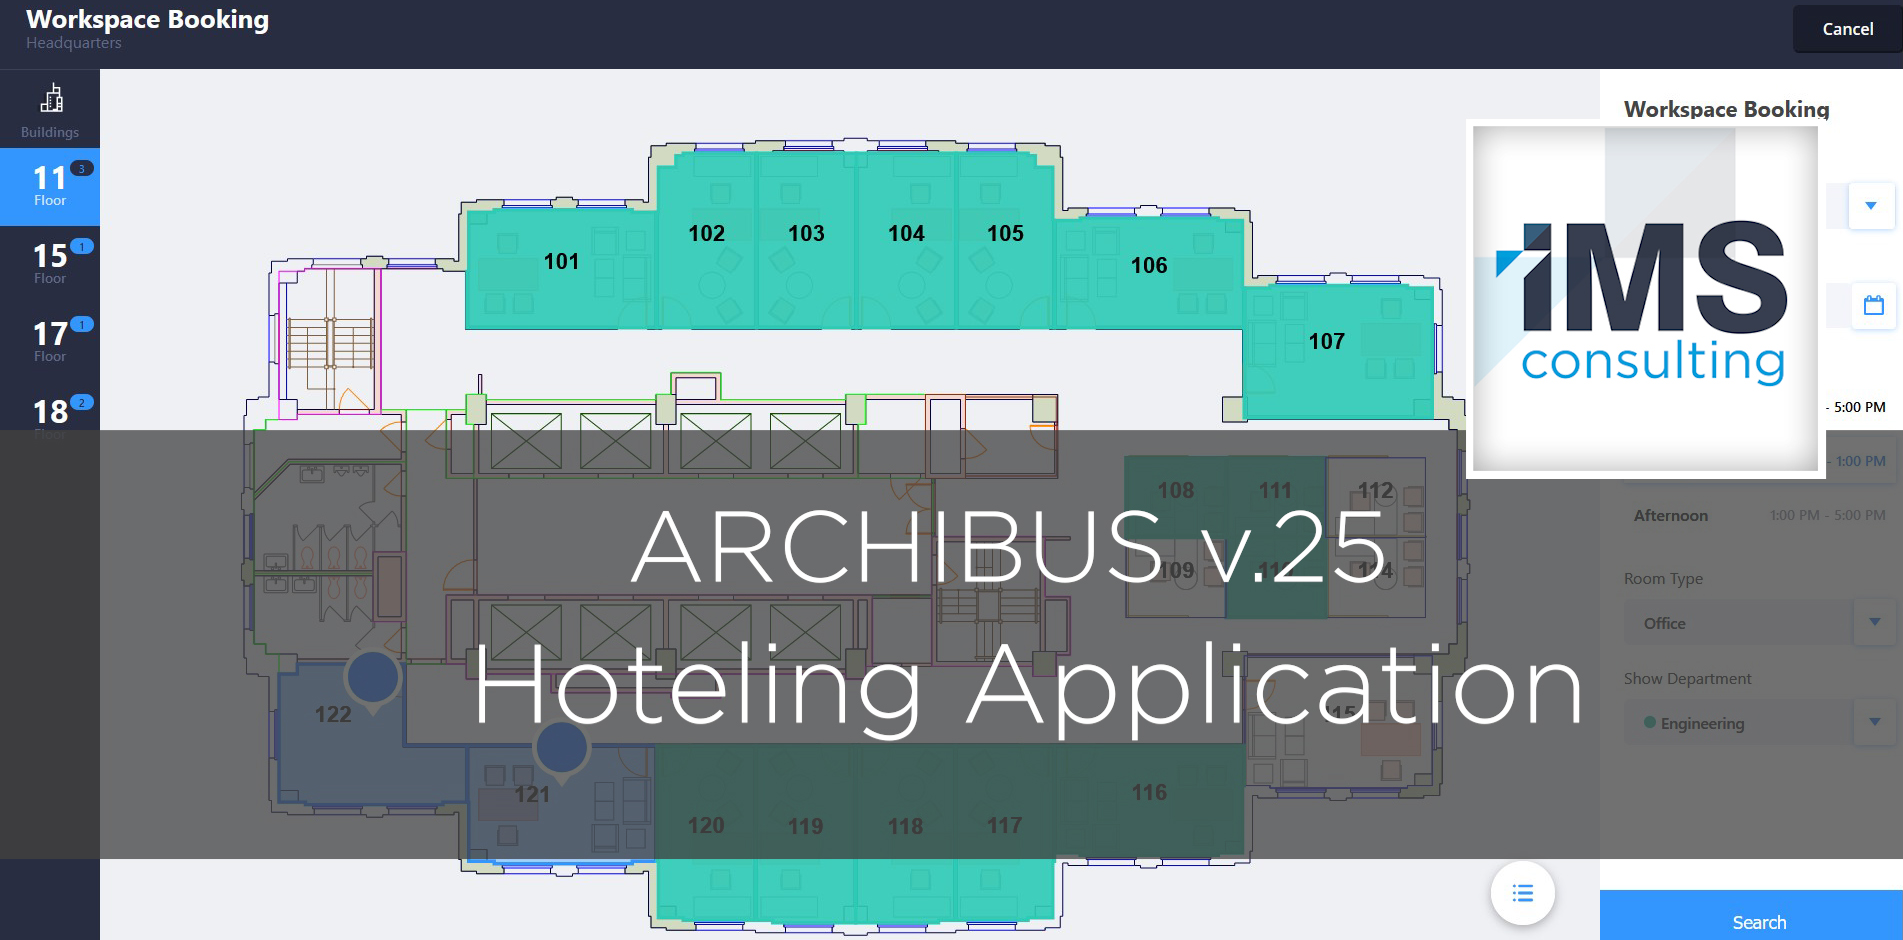 Archibus Hoteling Application - IMS Consulting